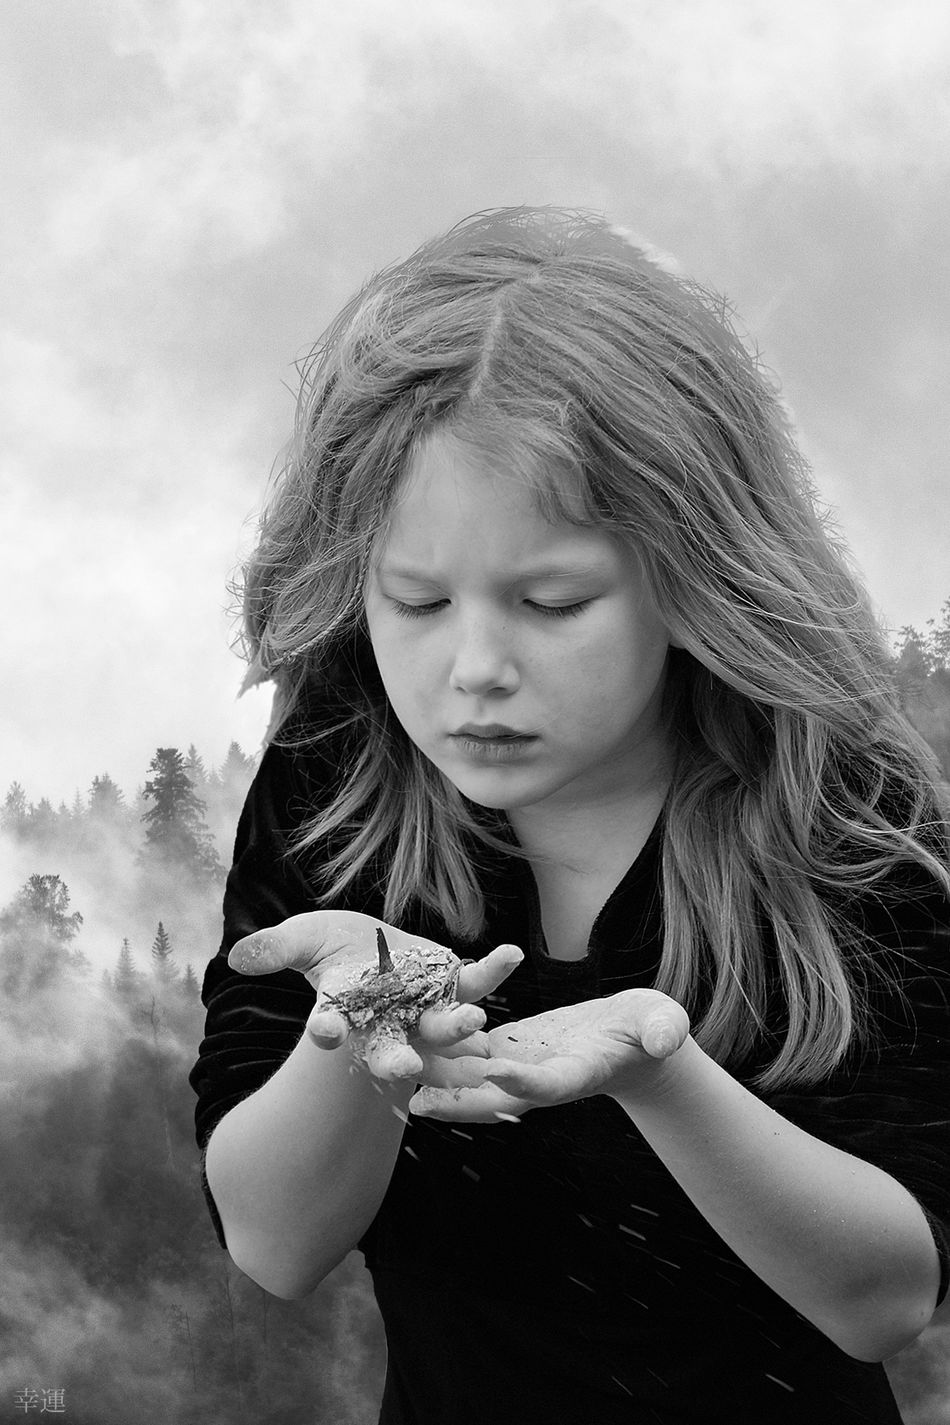 ashes to ashes, dust to dust Portrait Child Girl Close-up Melancholy Sadness Sorrow Mood Lucky's Mood Lucky's Monochrome Monochrome Monoart Black And White Shootermag EyeEm Gallery ArtWork Fine Art Photomanipulation Contrast Detail Shades Of Grey Tranquility Silence EyeEm Dust In The Wind